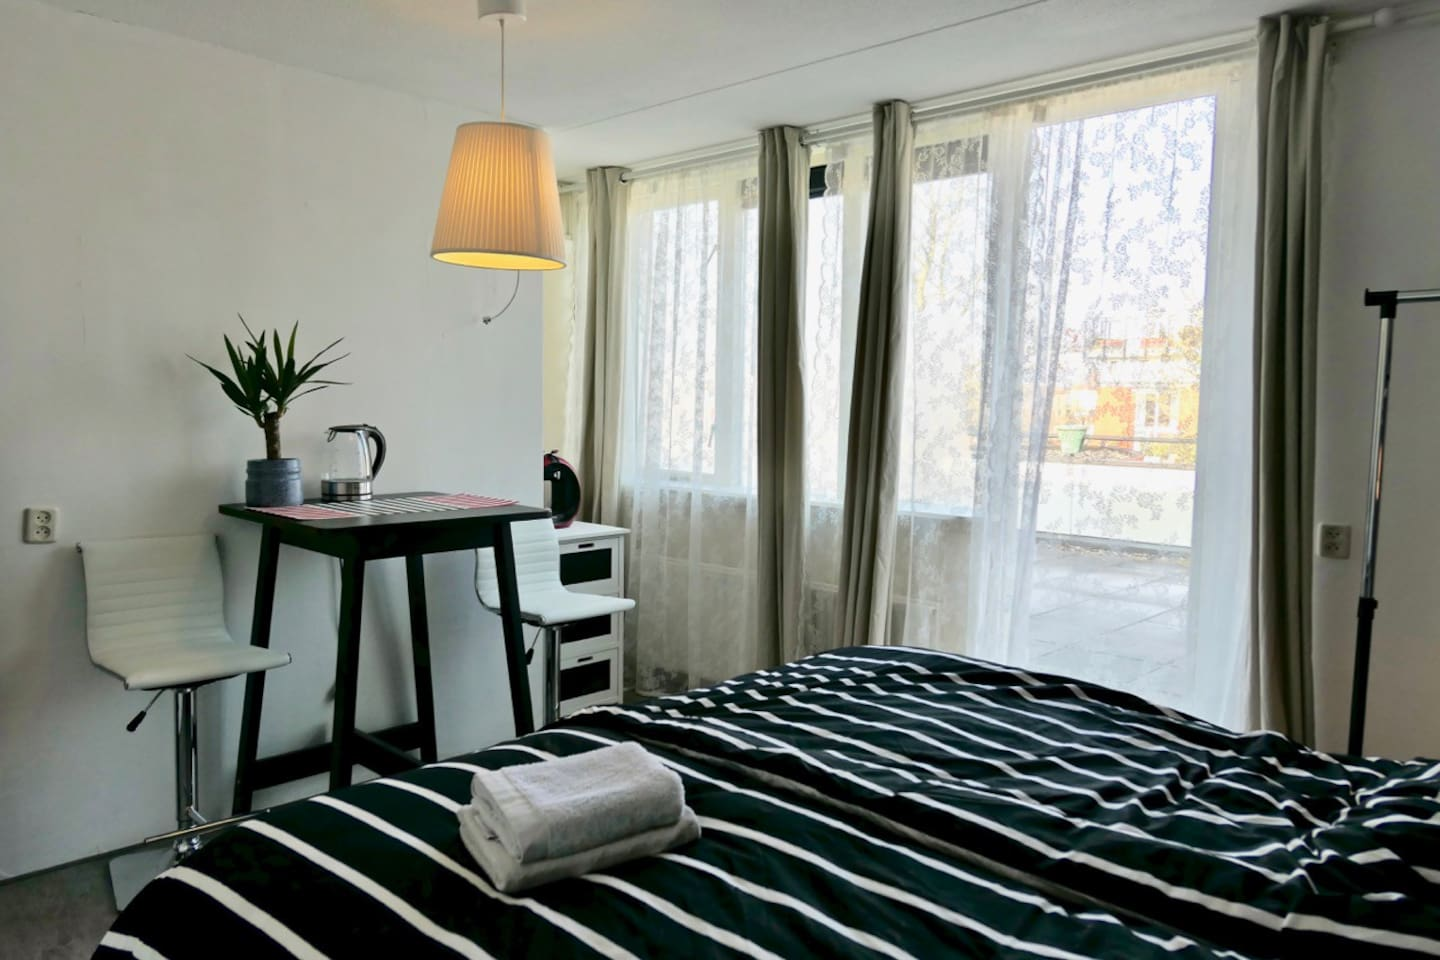 Bedroom with Balcony at your disposal